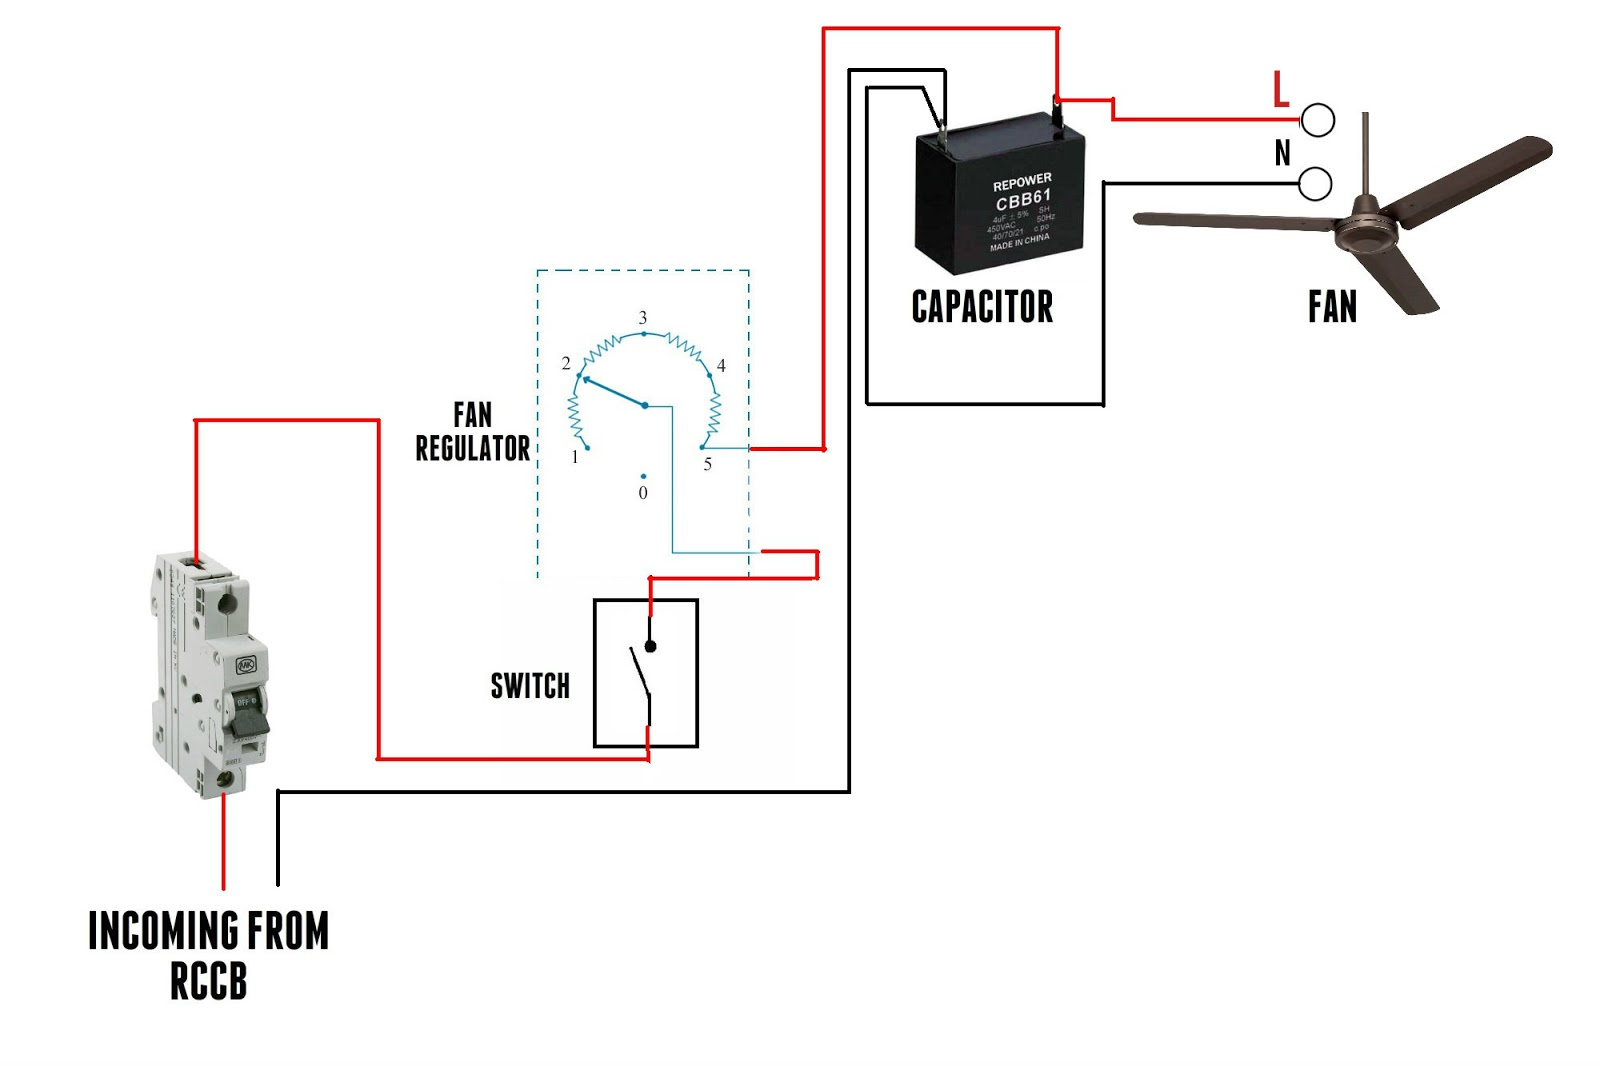 Wiring A Ceiling Fan From Switched Outlet moreover Fuses And Relay Volkswagen Touareg 2002 2010 furthermore Wiring Diagram For Two Sd Three Phase Motor as well Trouble Shooting Rv Slide 202212 together with Furniture Charming Harbor Breeze Speed Ceiling Fan Switch Wiring C10d75e9fdc6bb2f. on 2 sd fan wiring diagram